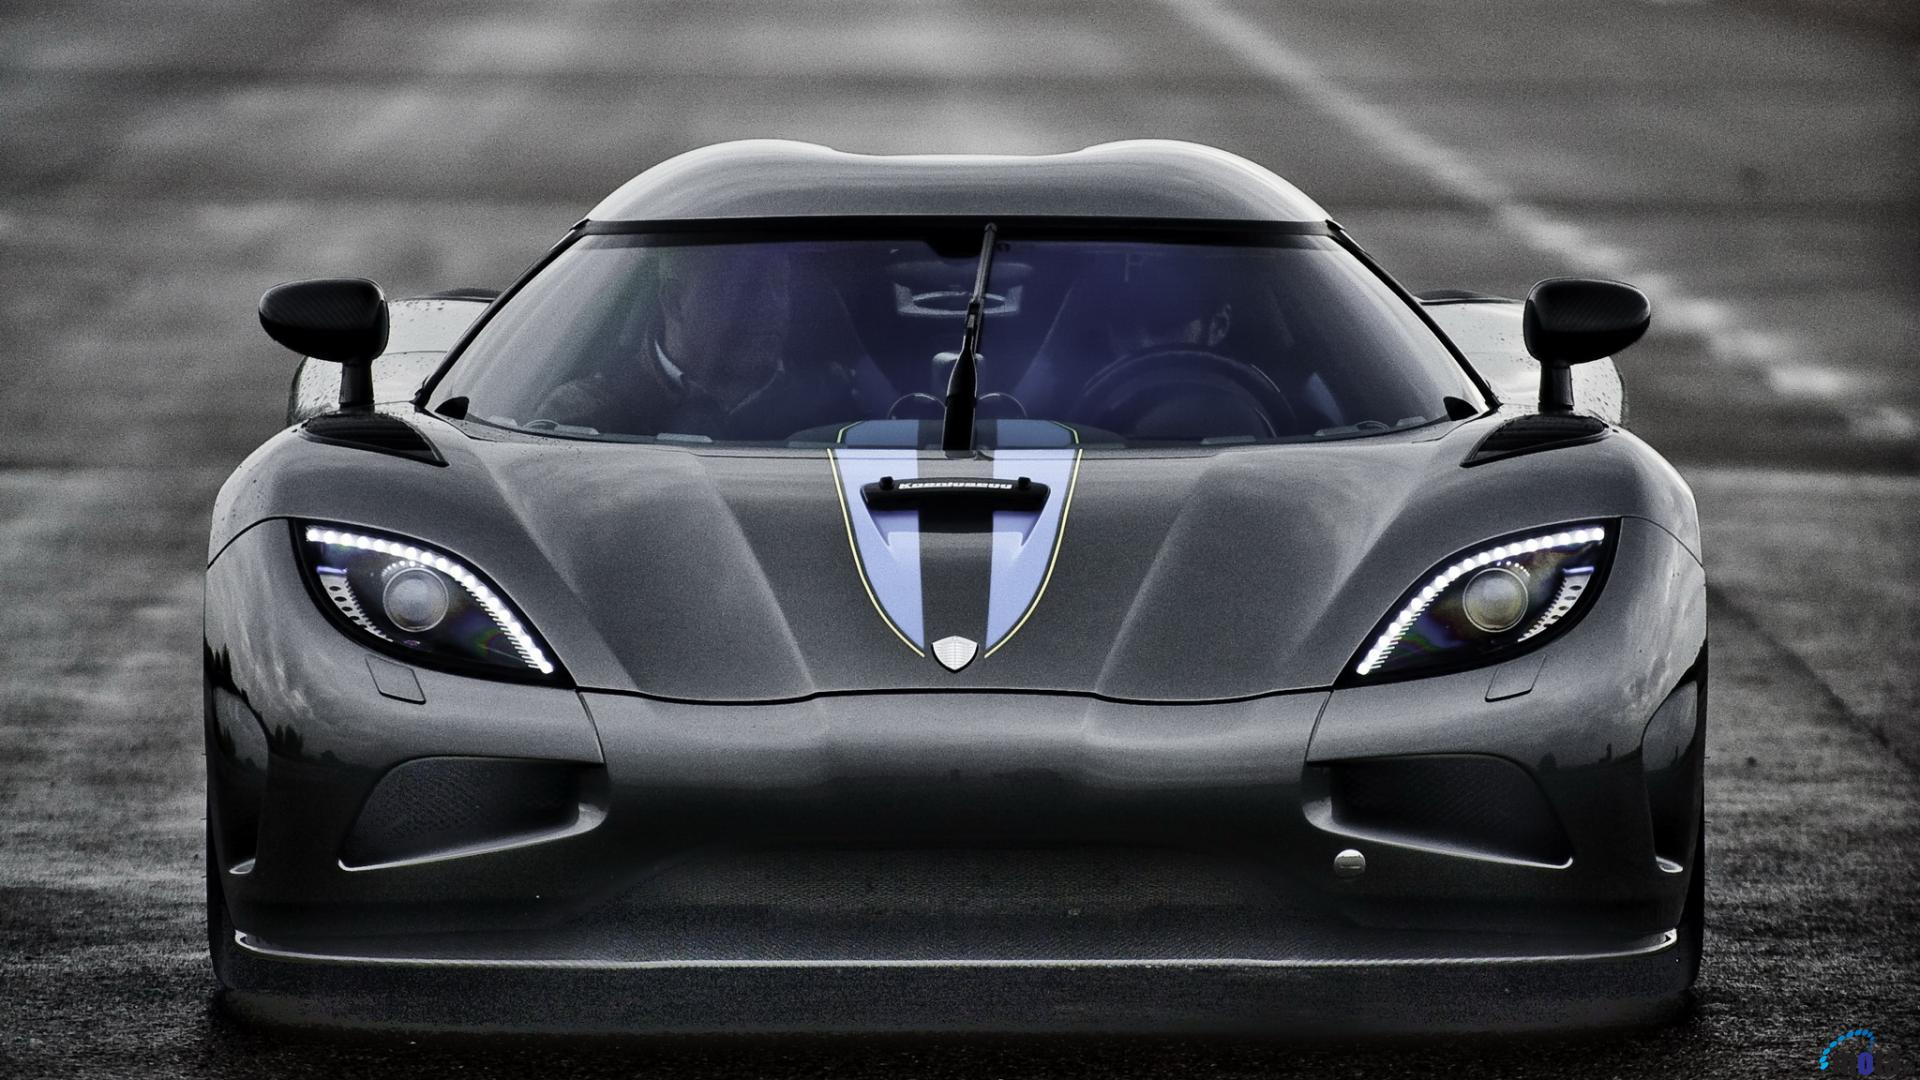 koenigsegg agera r grid 2 with Koenigsegg Agera R Wallpaper 1080p on Rpg Maker Mv Dlc Import additionally Razendsnel Gamen Met De Koenigsegg Razer Blade Laptop as well Koenigsegg Agera R Wallpaper 1080p in addition Vehicle likewise Koenigsegg Agera R Wallpaper 1080p.